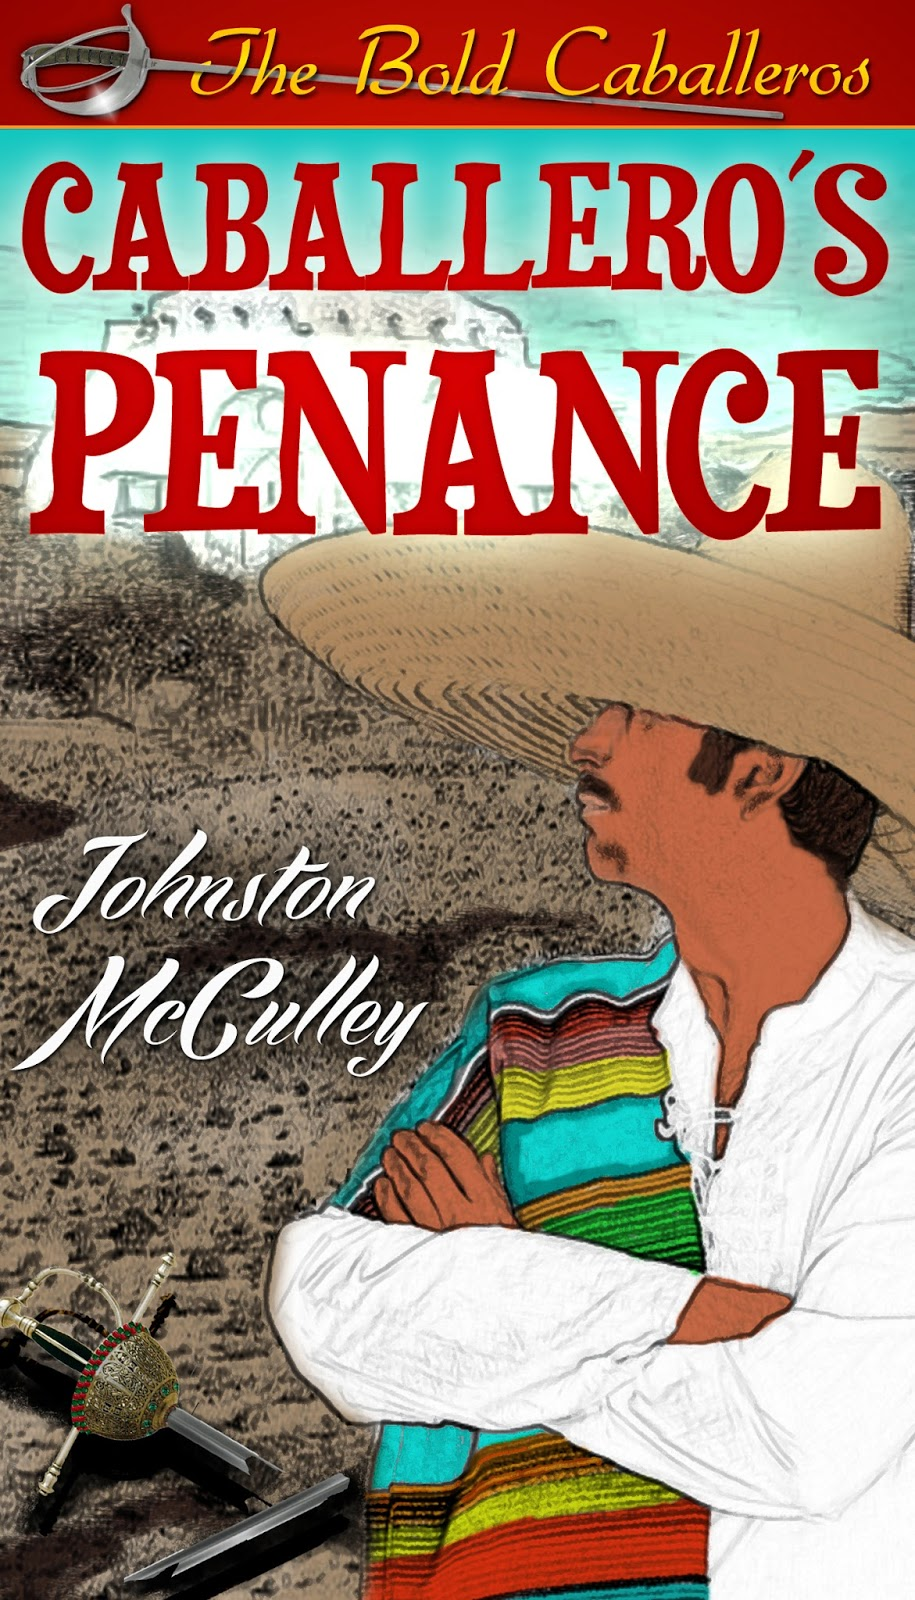 http://www.amazon.com/Caballeros-Penance-Annotated-Proud-Forced-ebook/dp/B00N3OYNLW/